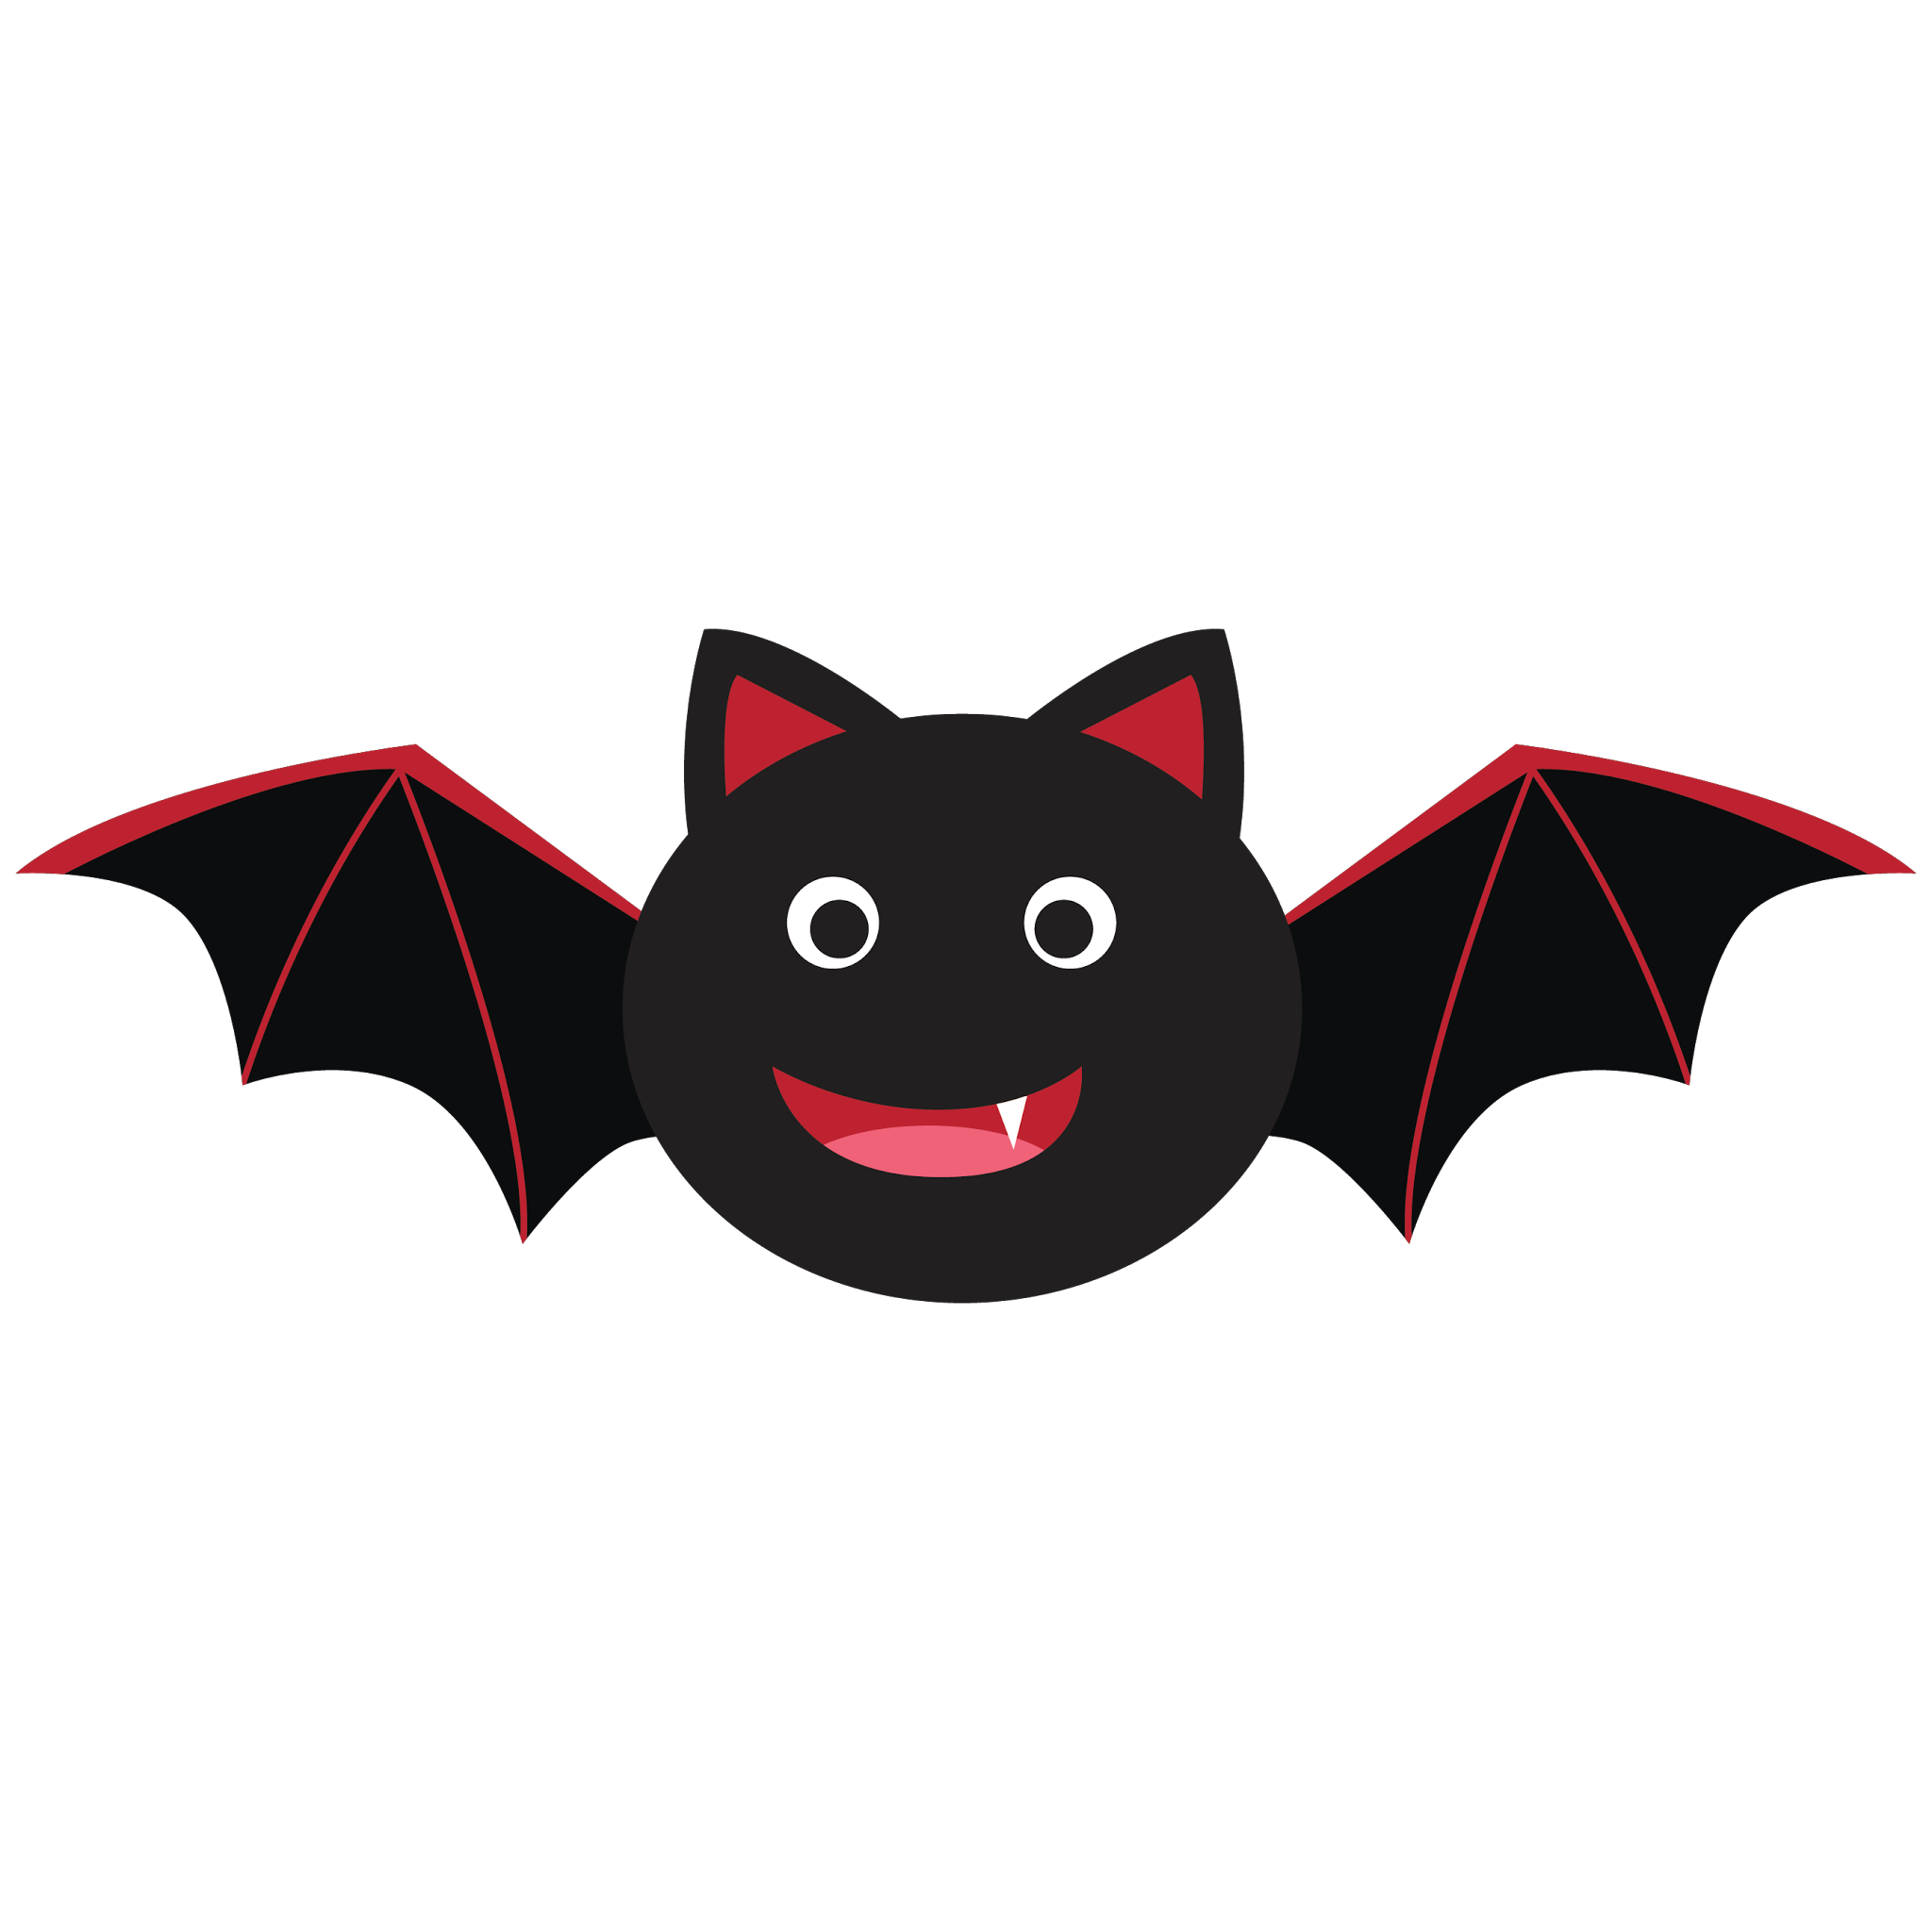 Haunted clipart cute halloween bat #12